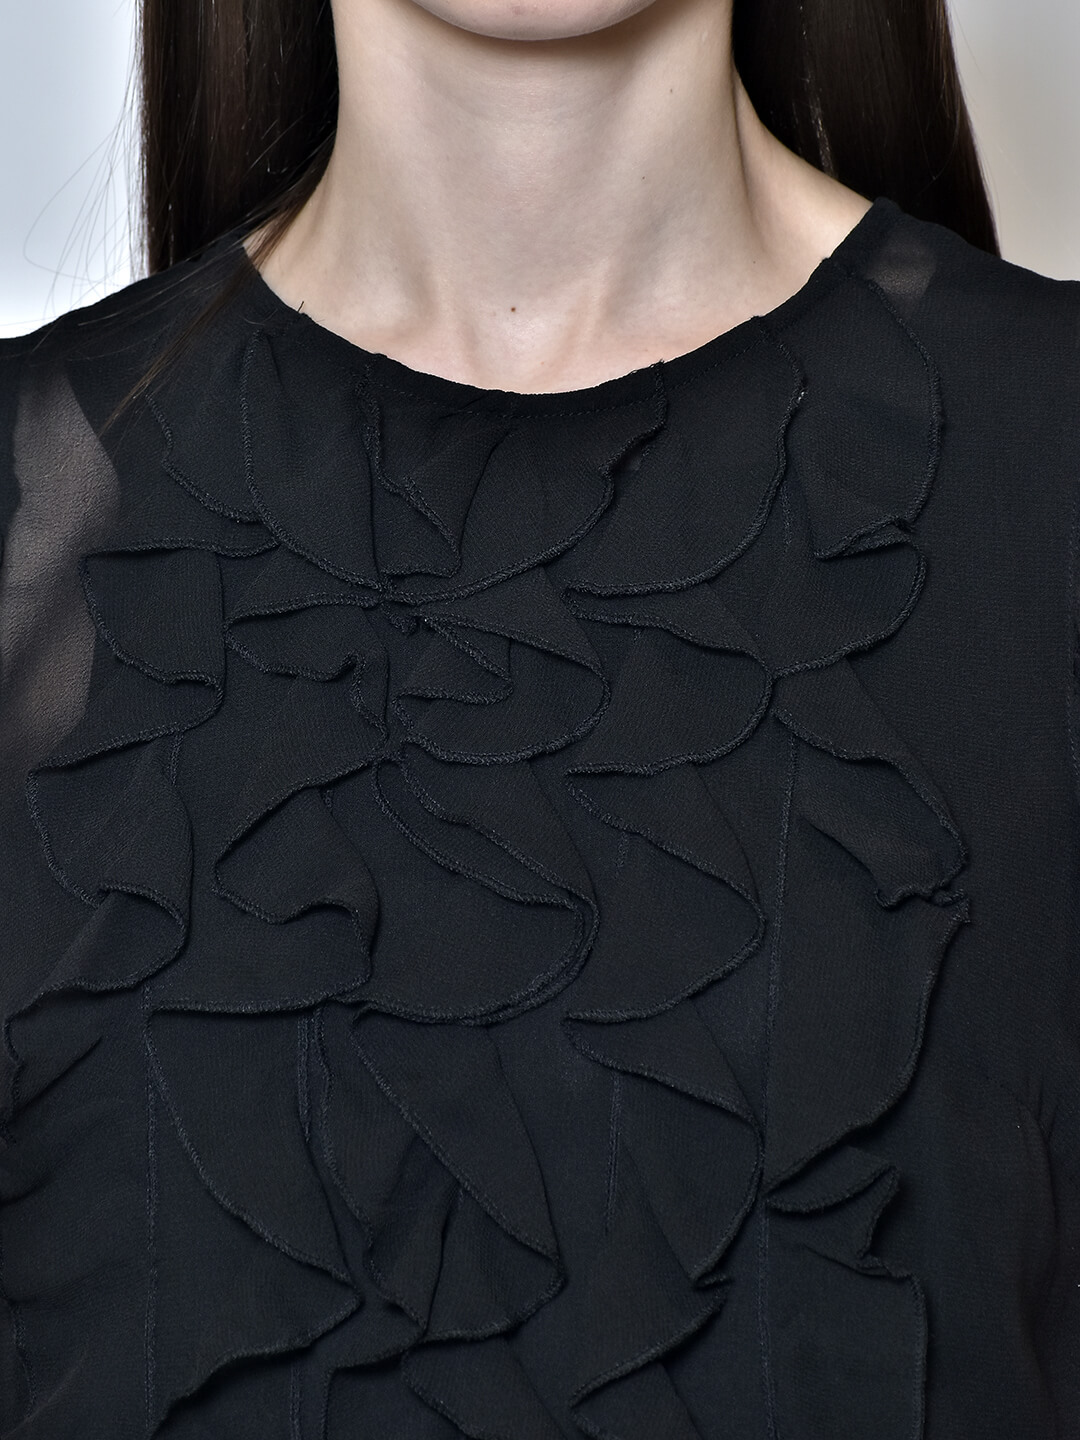 Black top for women round neck frill detail top